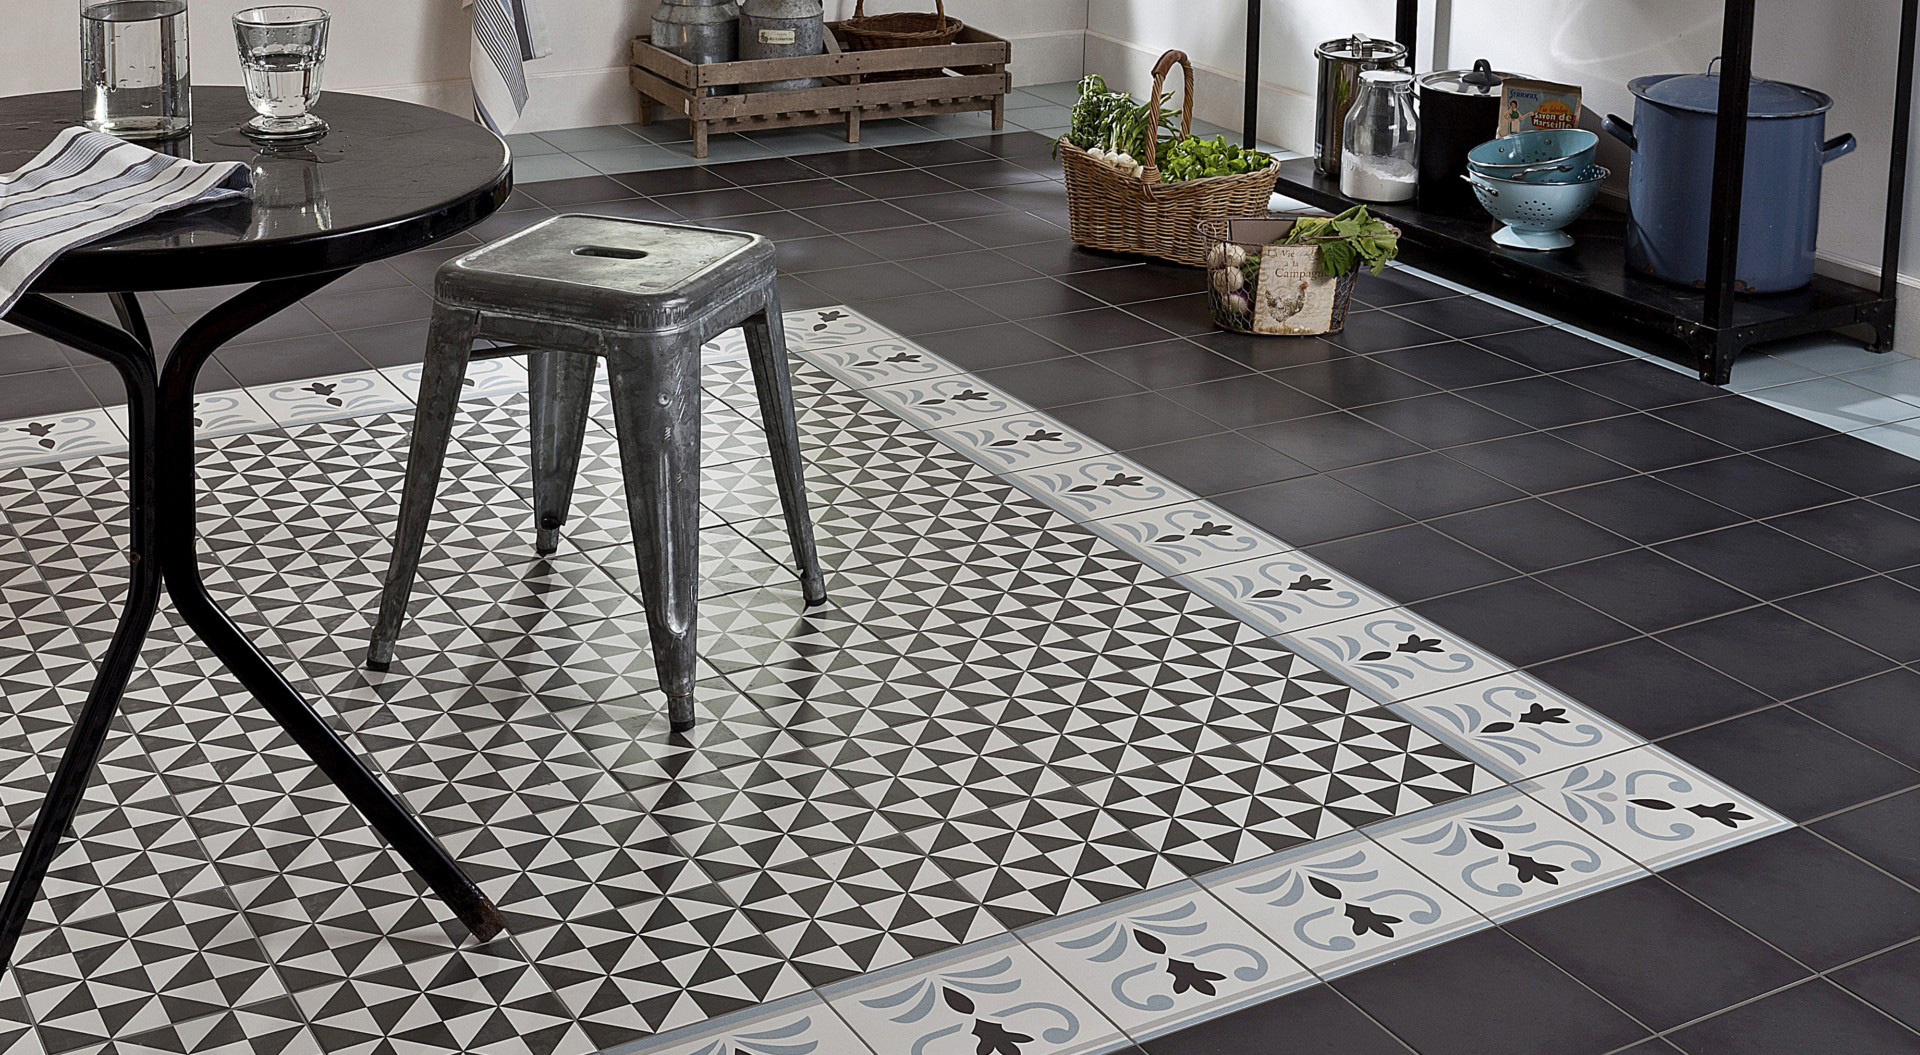 Carreaux de ciment 5 bonnes raisons d 39 adopter la tendance mesa bella blog - Tapis de salon saint maclou ...